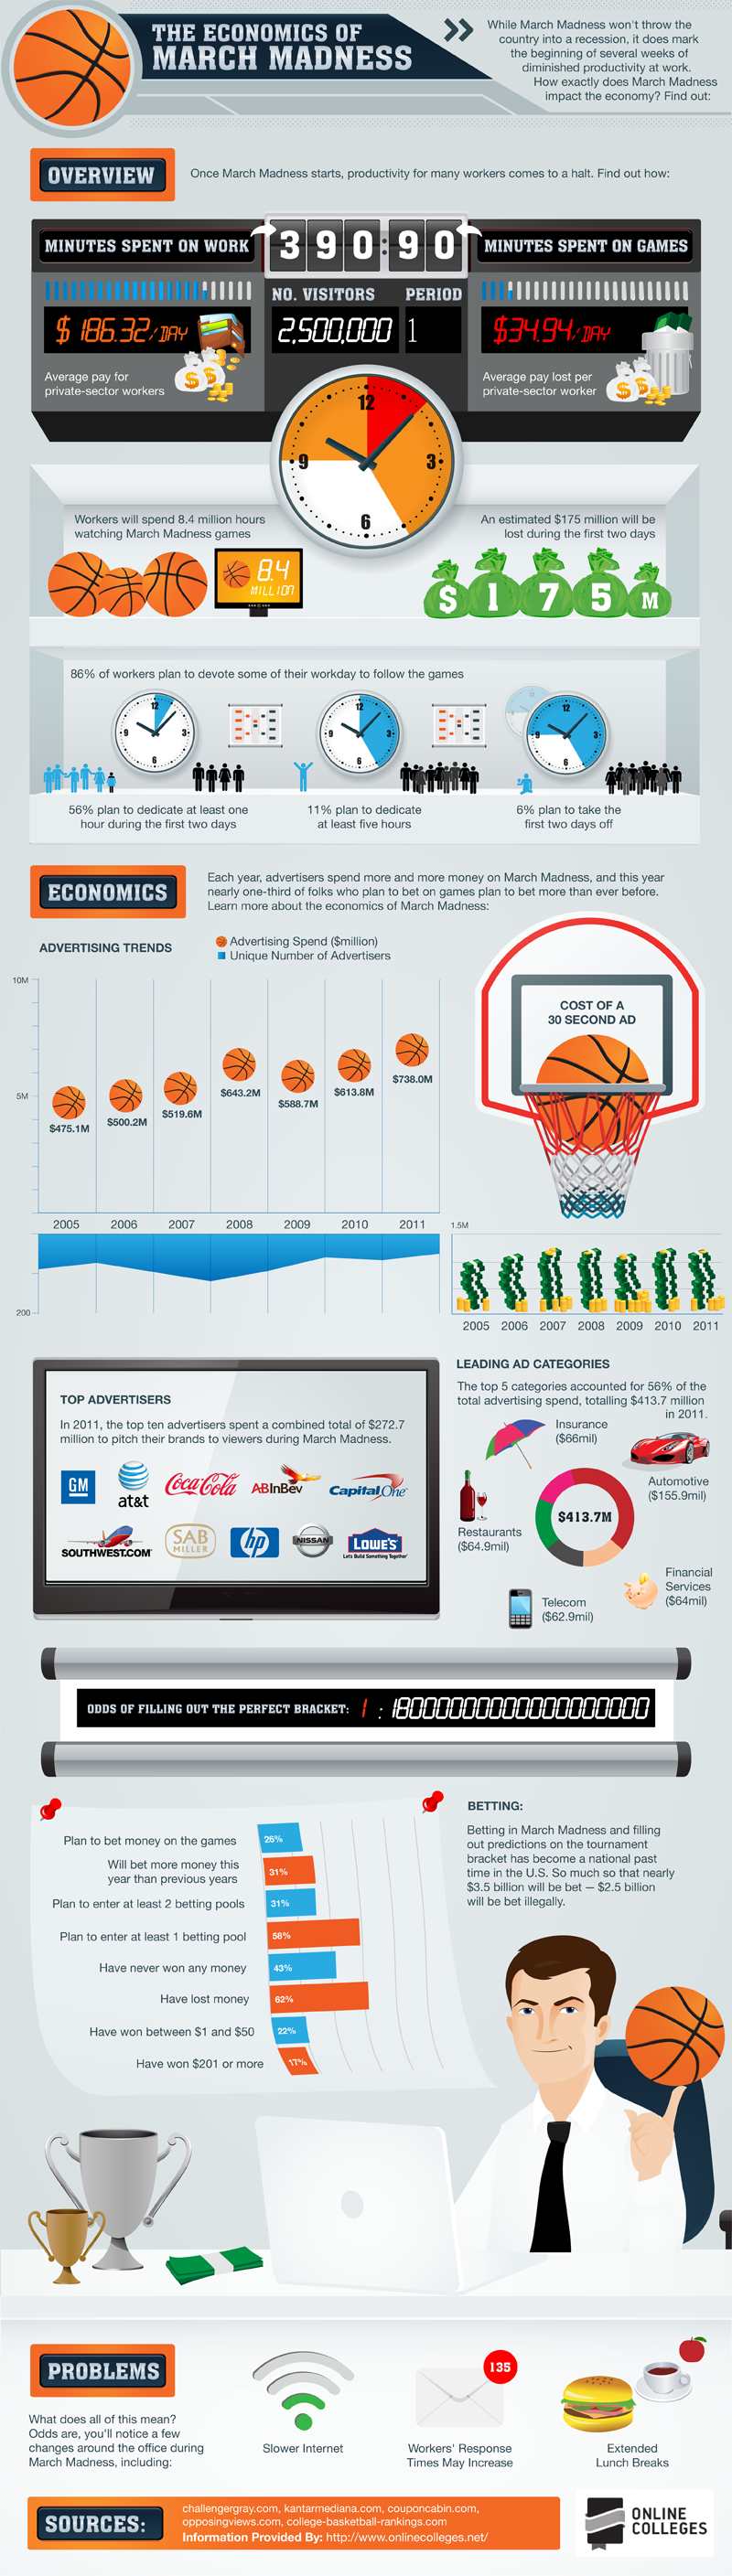 The Economics of March Madness Infographic